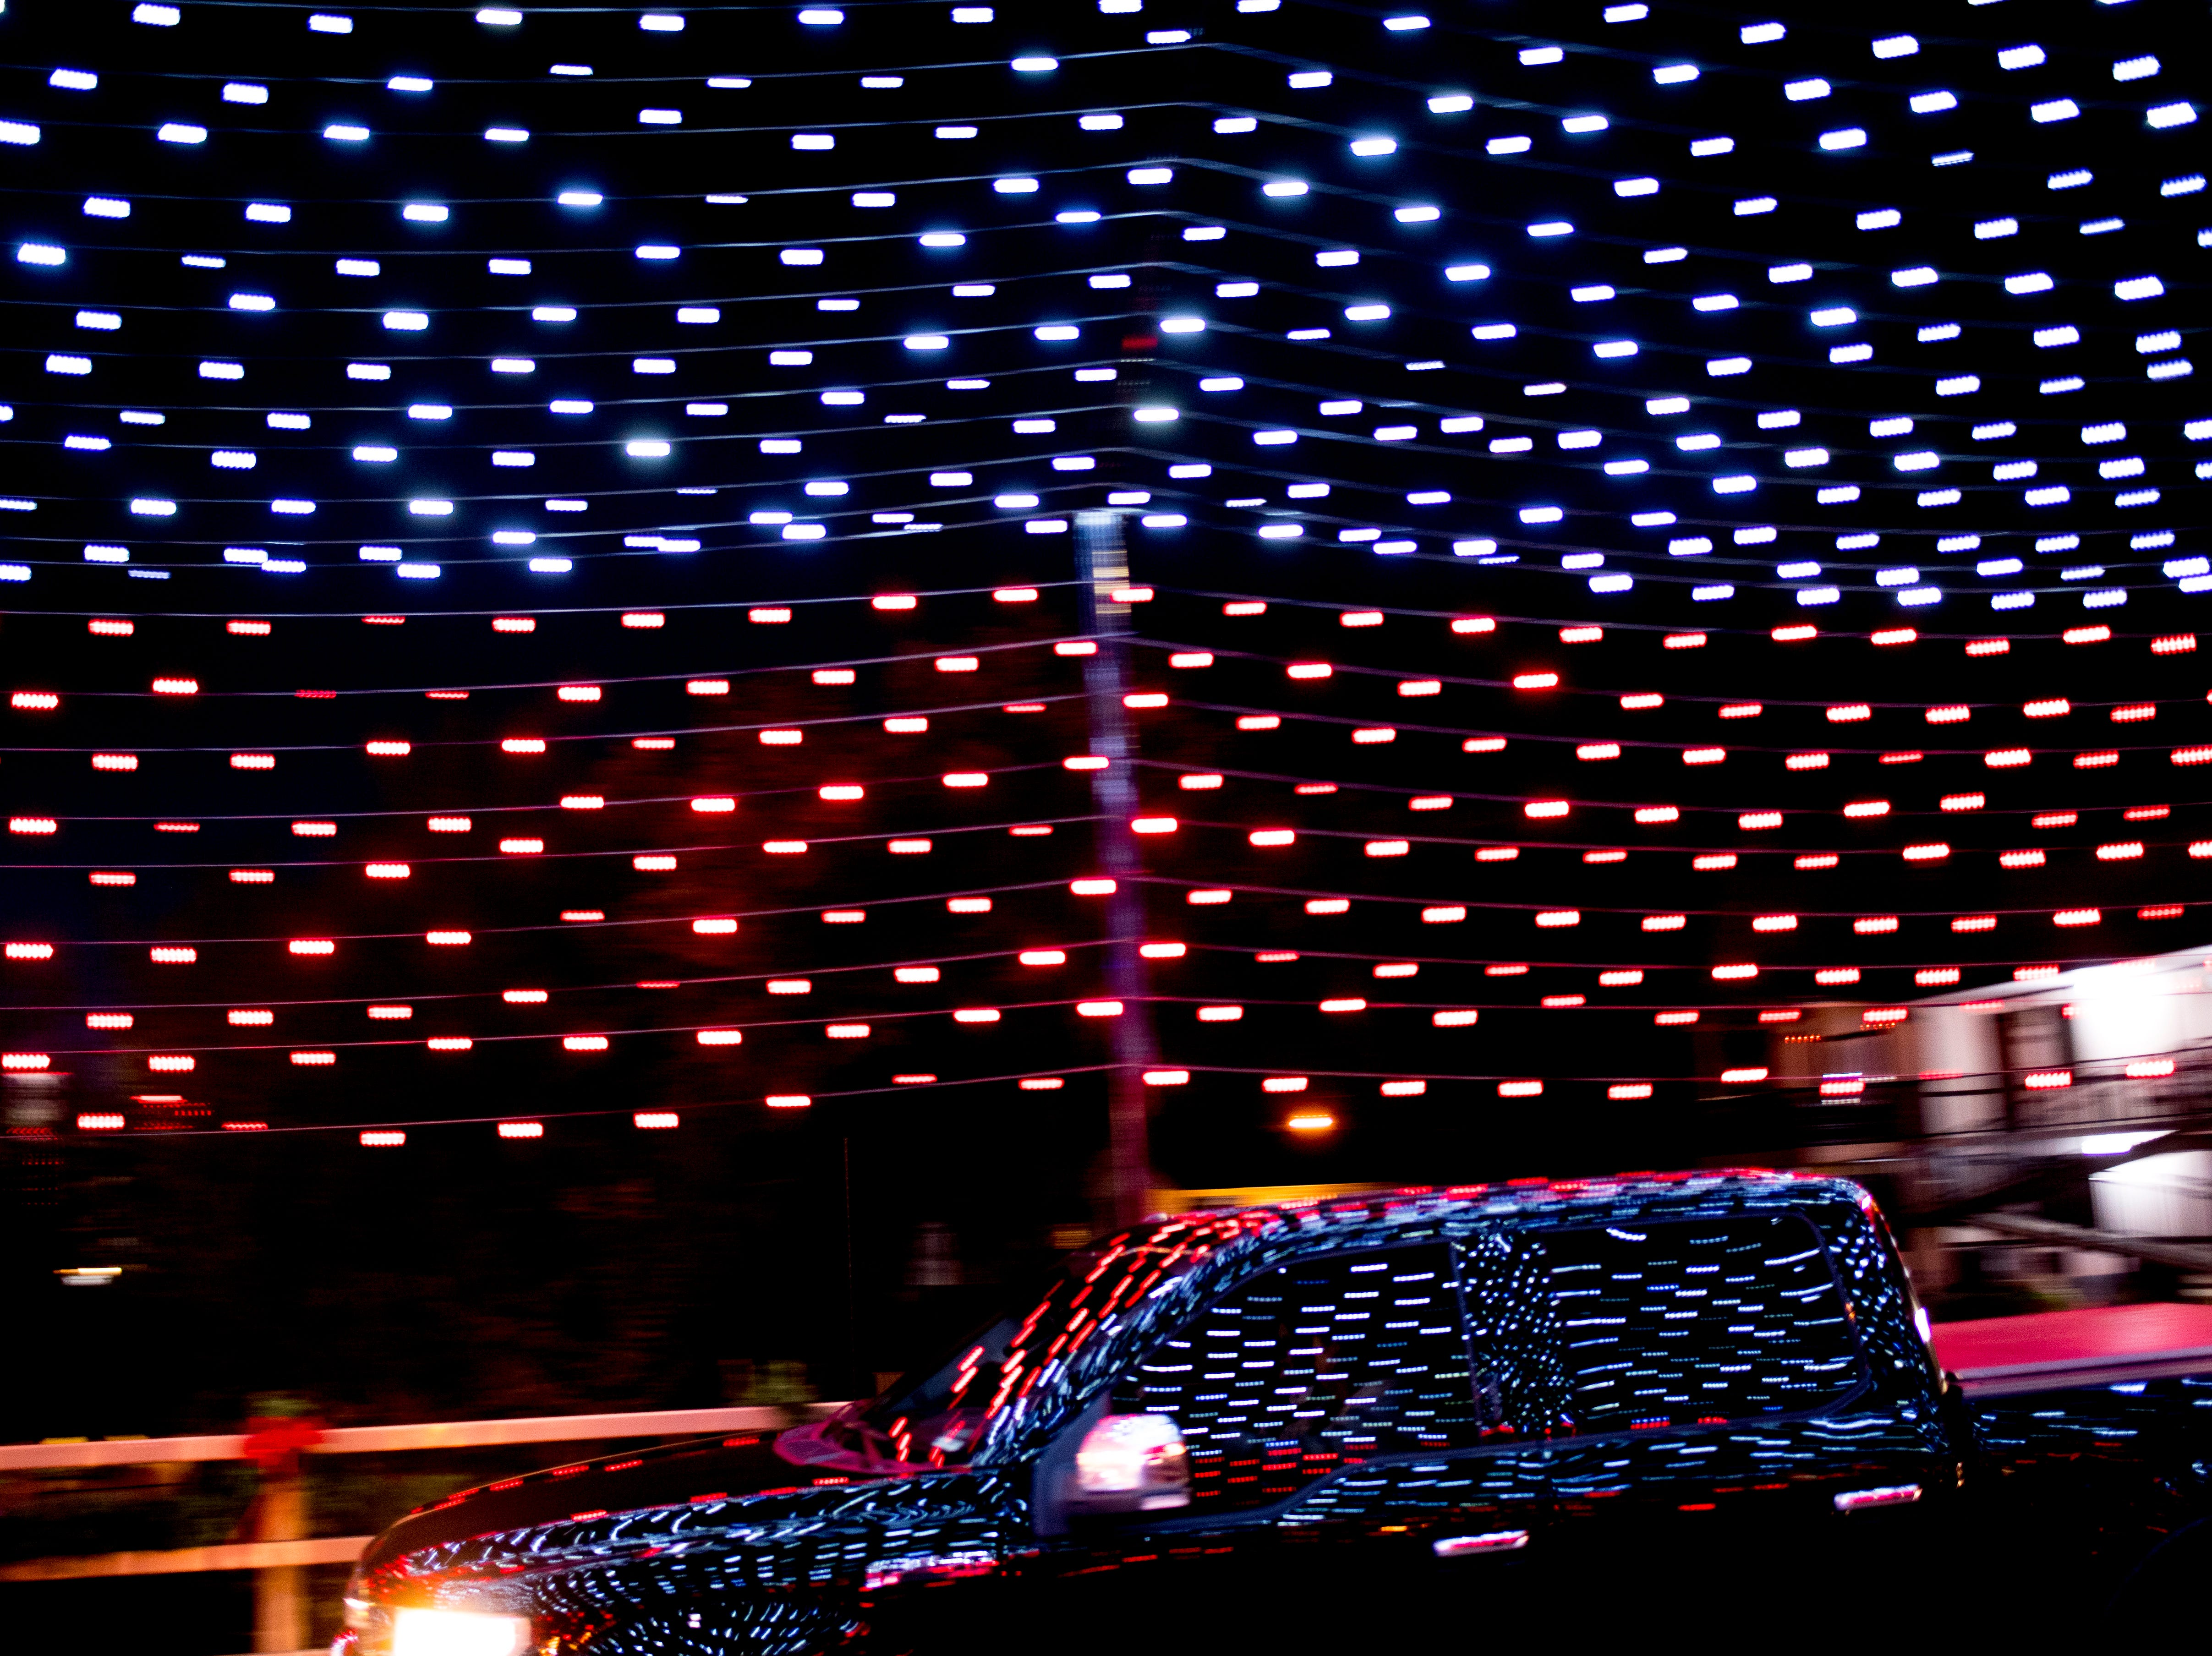 A car passes through the illuminated Old Mill Bridge during the annual Winterfest holiday lights display in Pigeon Forge, Tennessee on Friday, November 16, 2018.